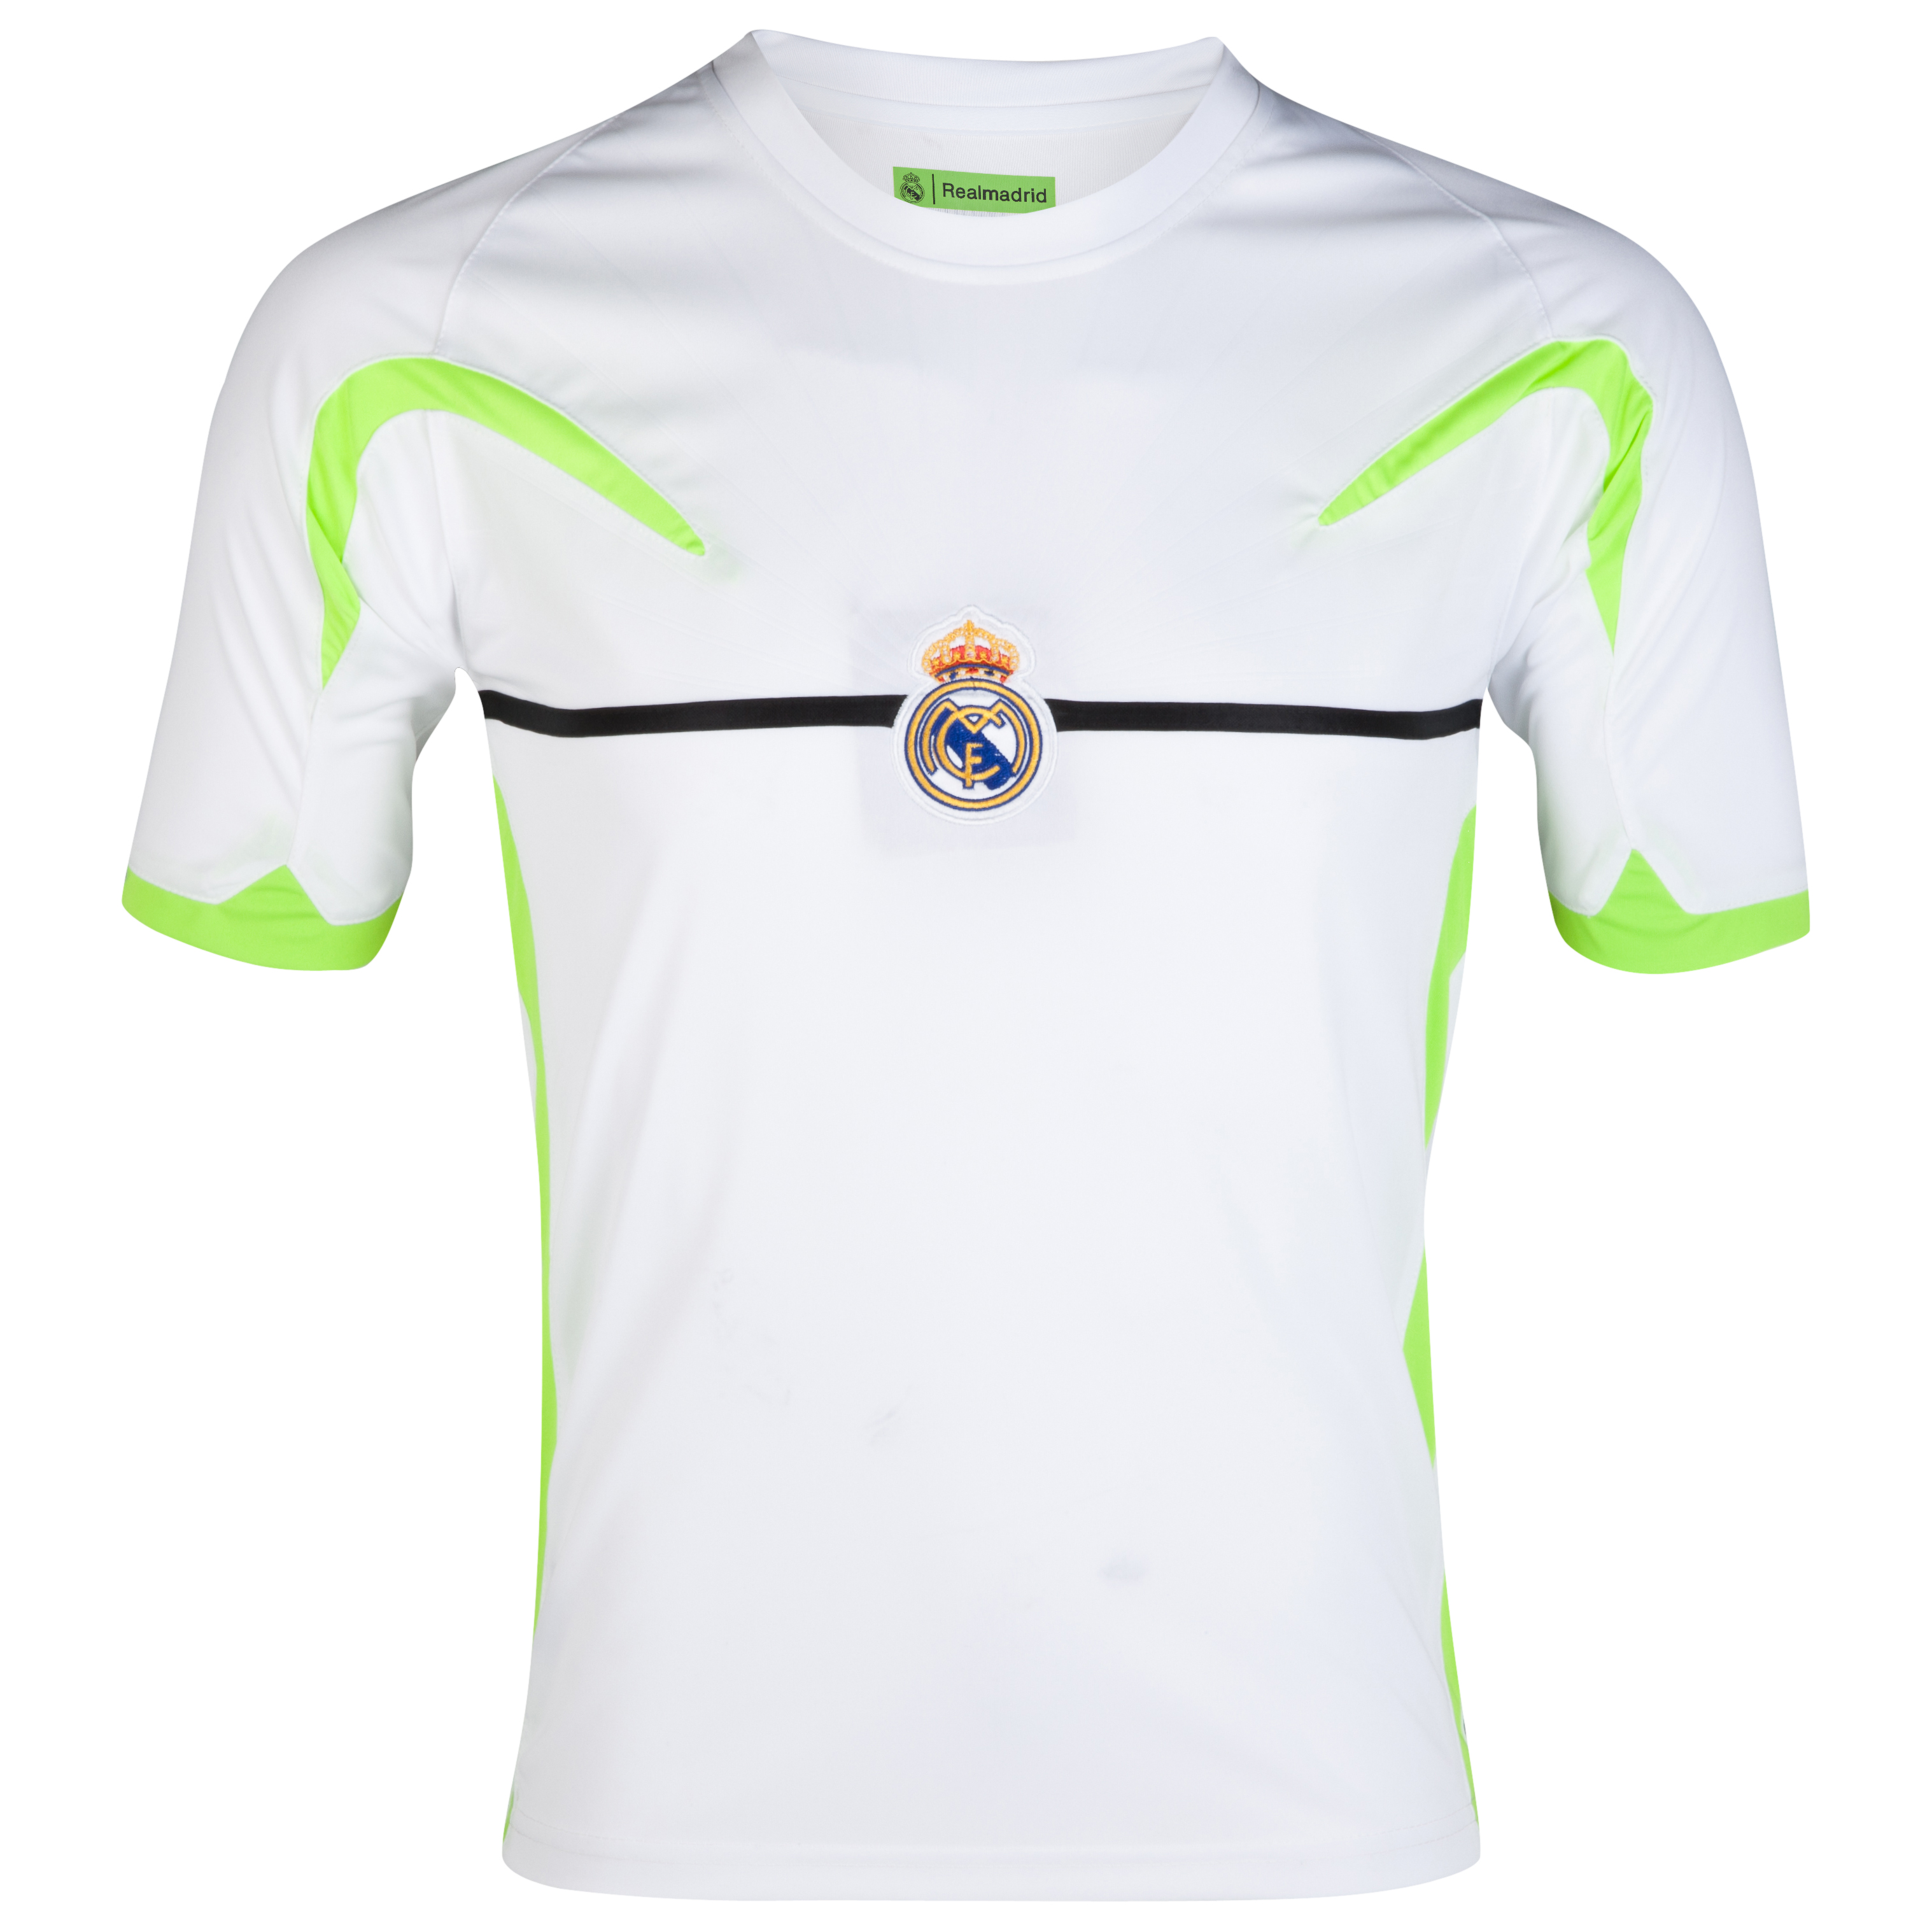 Camiseta paneles Real Madrid - Blanco